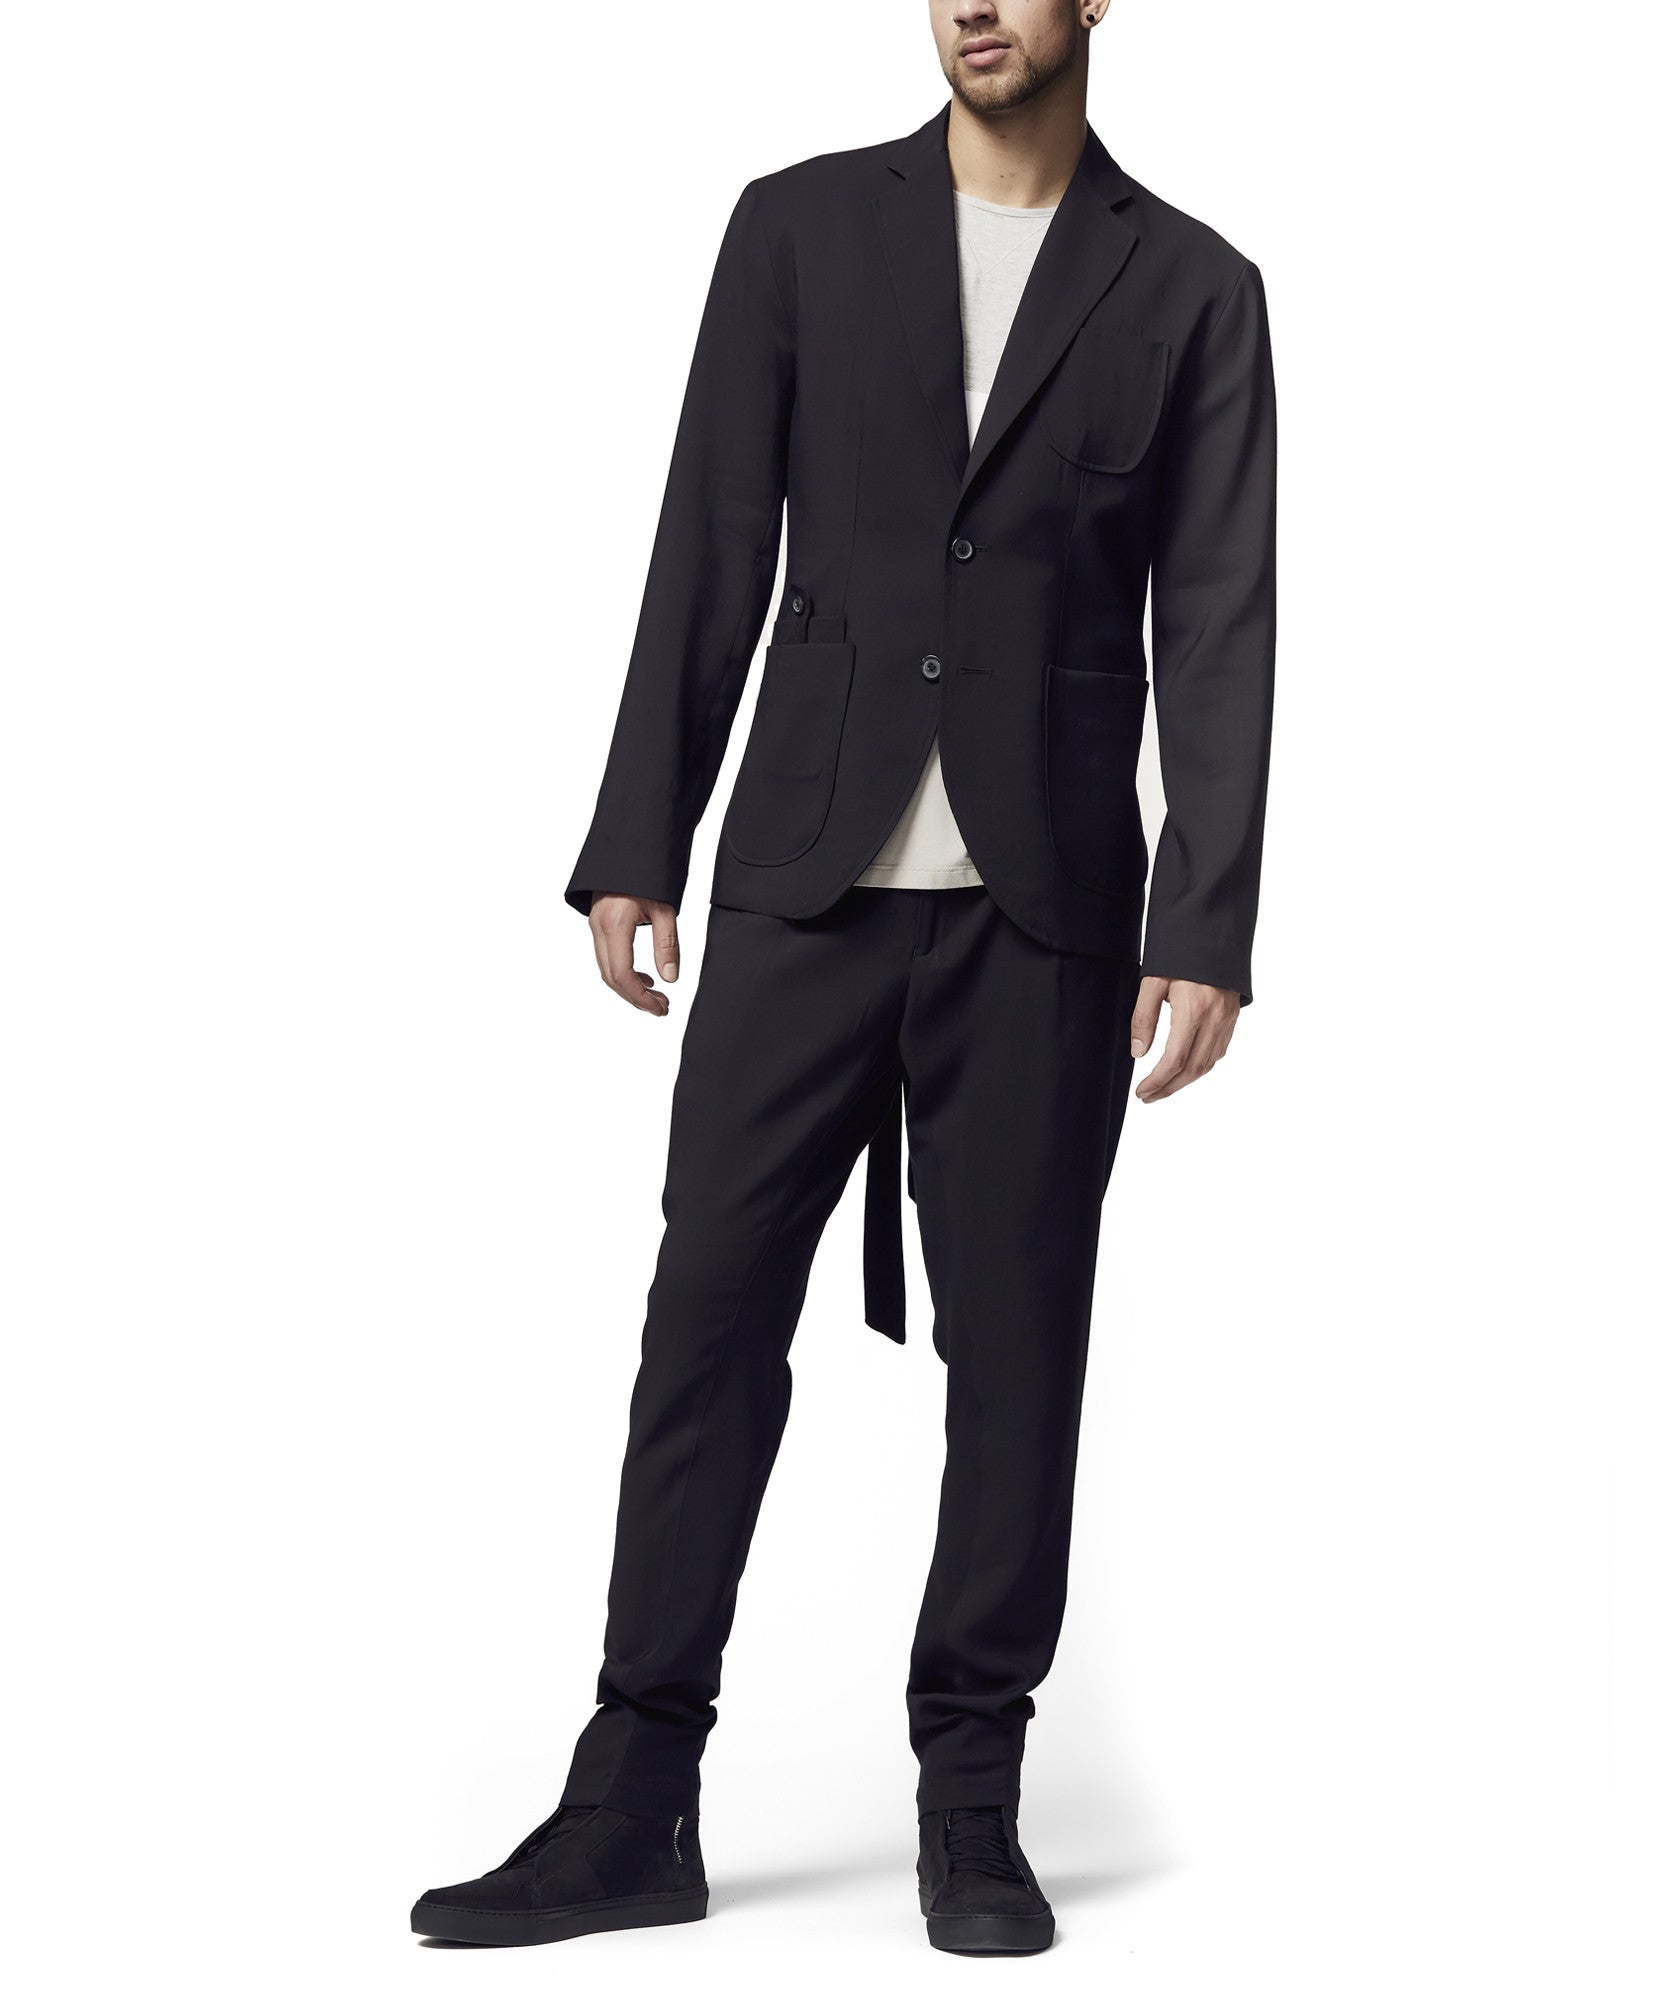 Men's black Tencel/Linen tie back blazer S/S18 full image